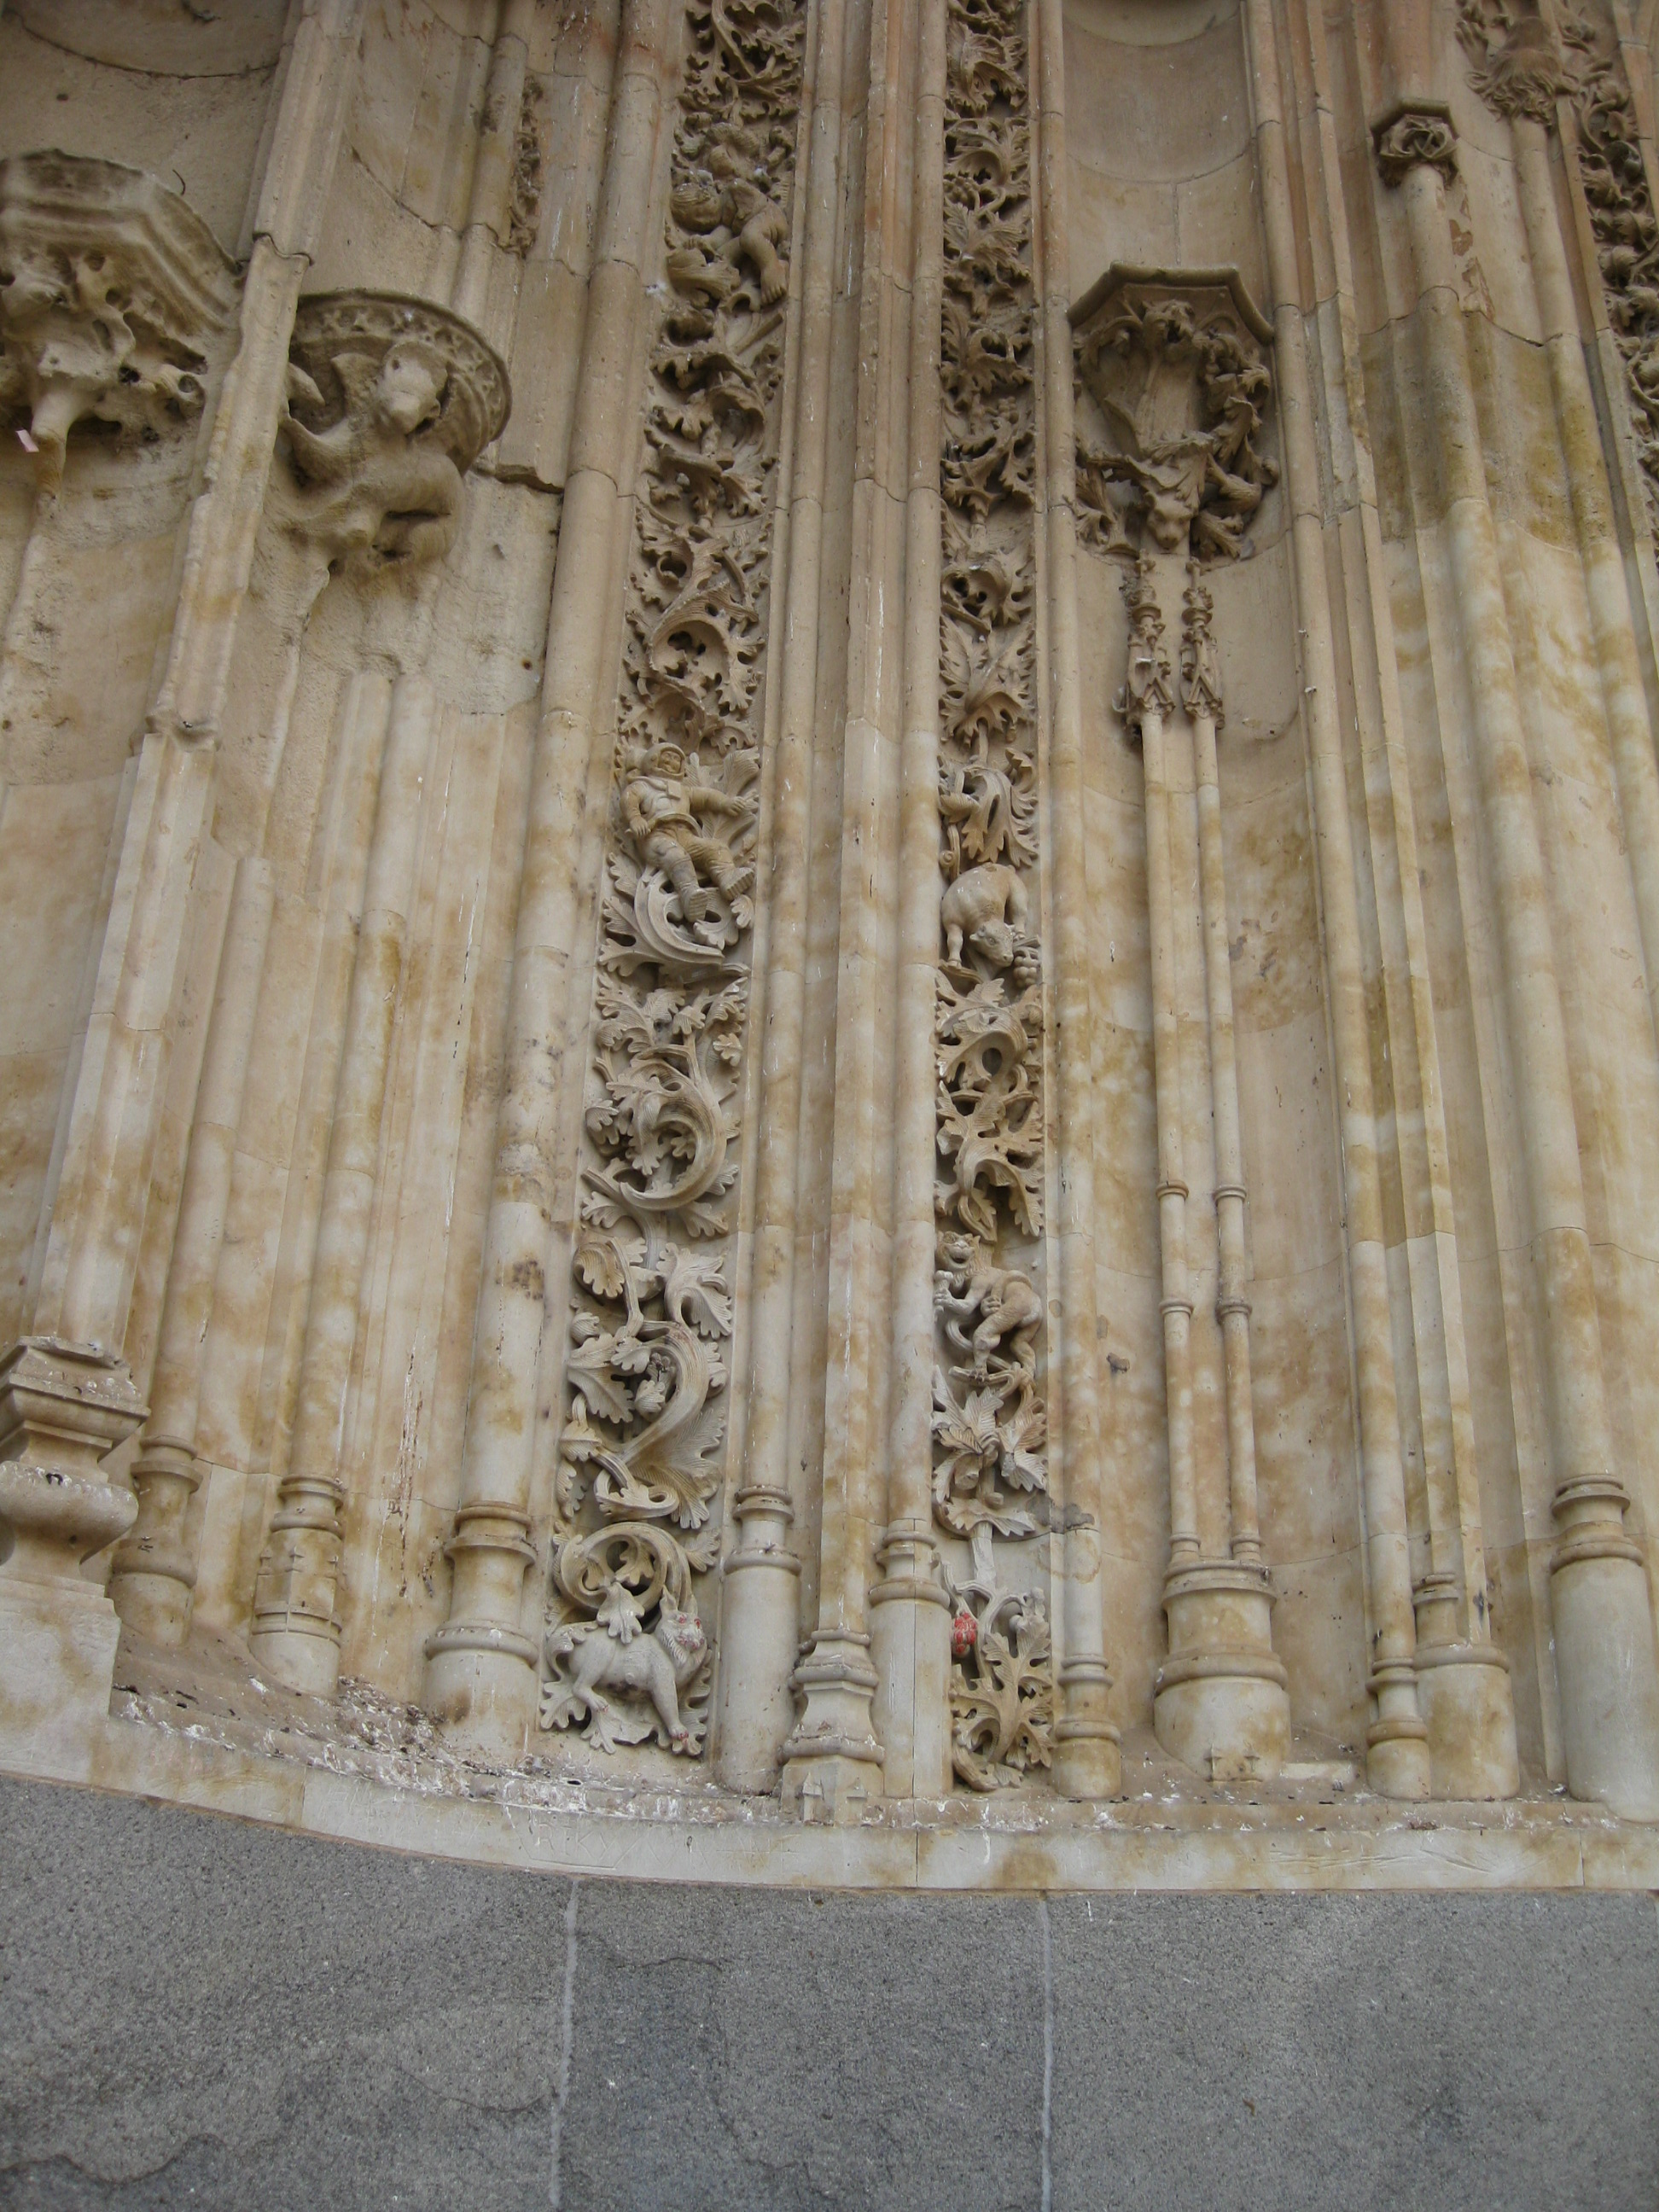 Salamanca Cathedrals, the Astronaut and the Gargoyle.